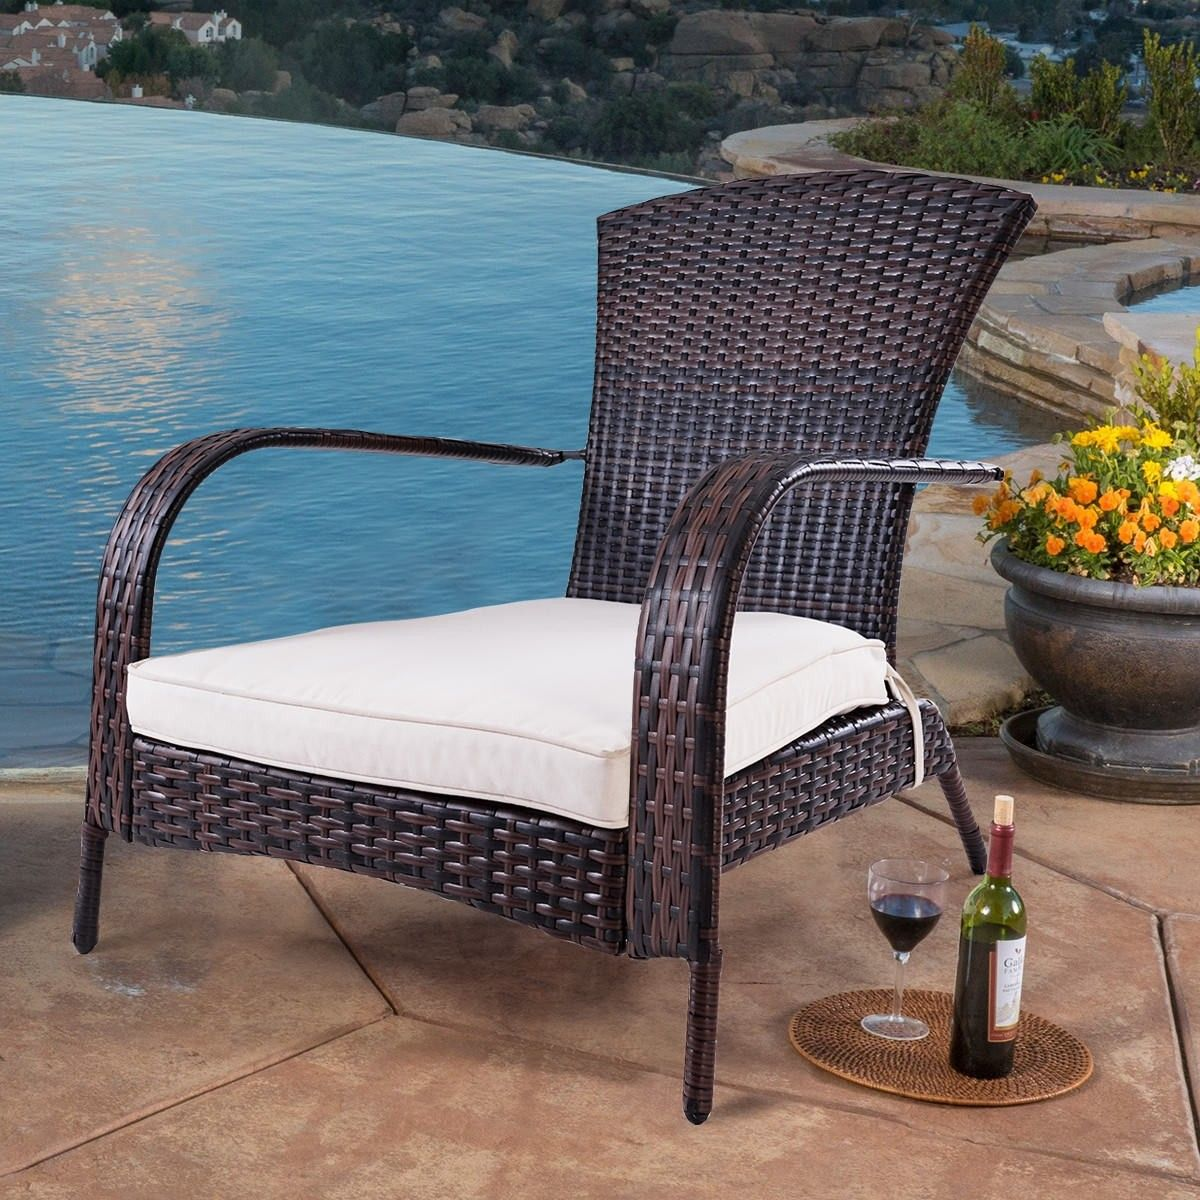 Outdoor Wicker Rattan Porch Deck Adirondack Chair W Cushion With Images Outdoor Chairs Porch Chairs Outdoor Wicker